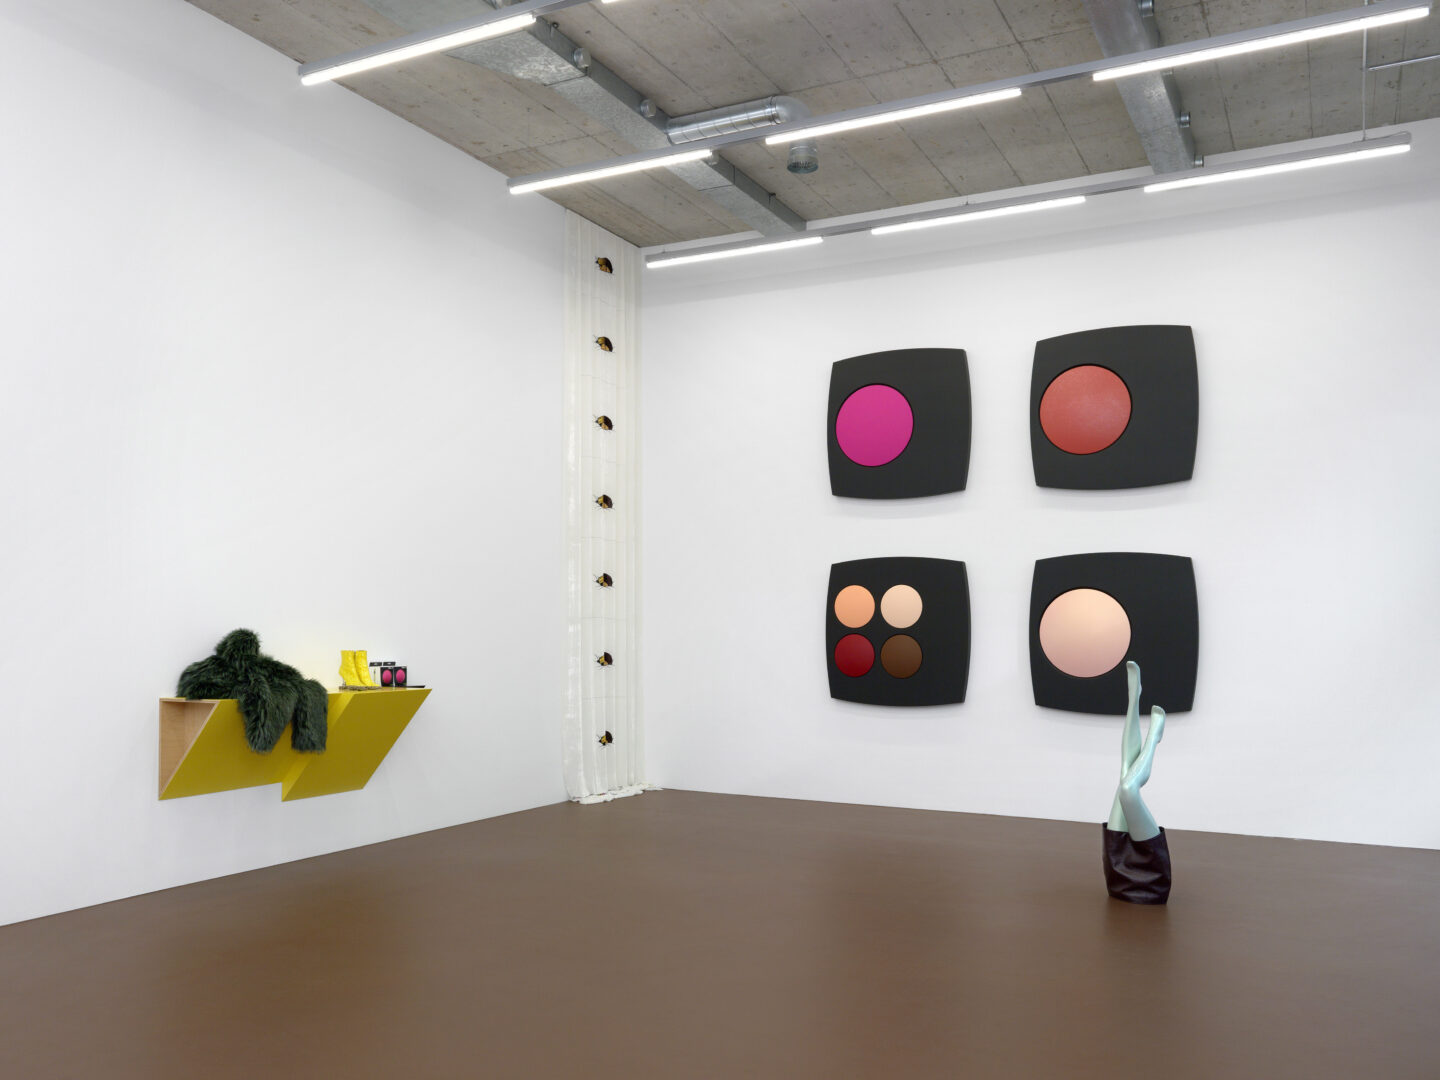 Exhibition View Sylvie Fleury Soloshow «JOY» at Karma International, Zurich, 2019 / Photo: Annik Wetter / Courtesy: the artist and Karma International